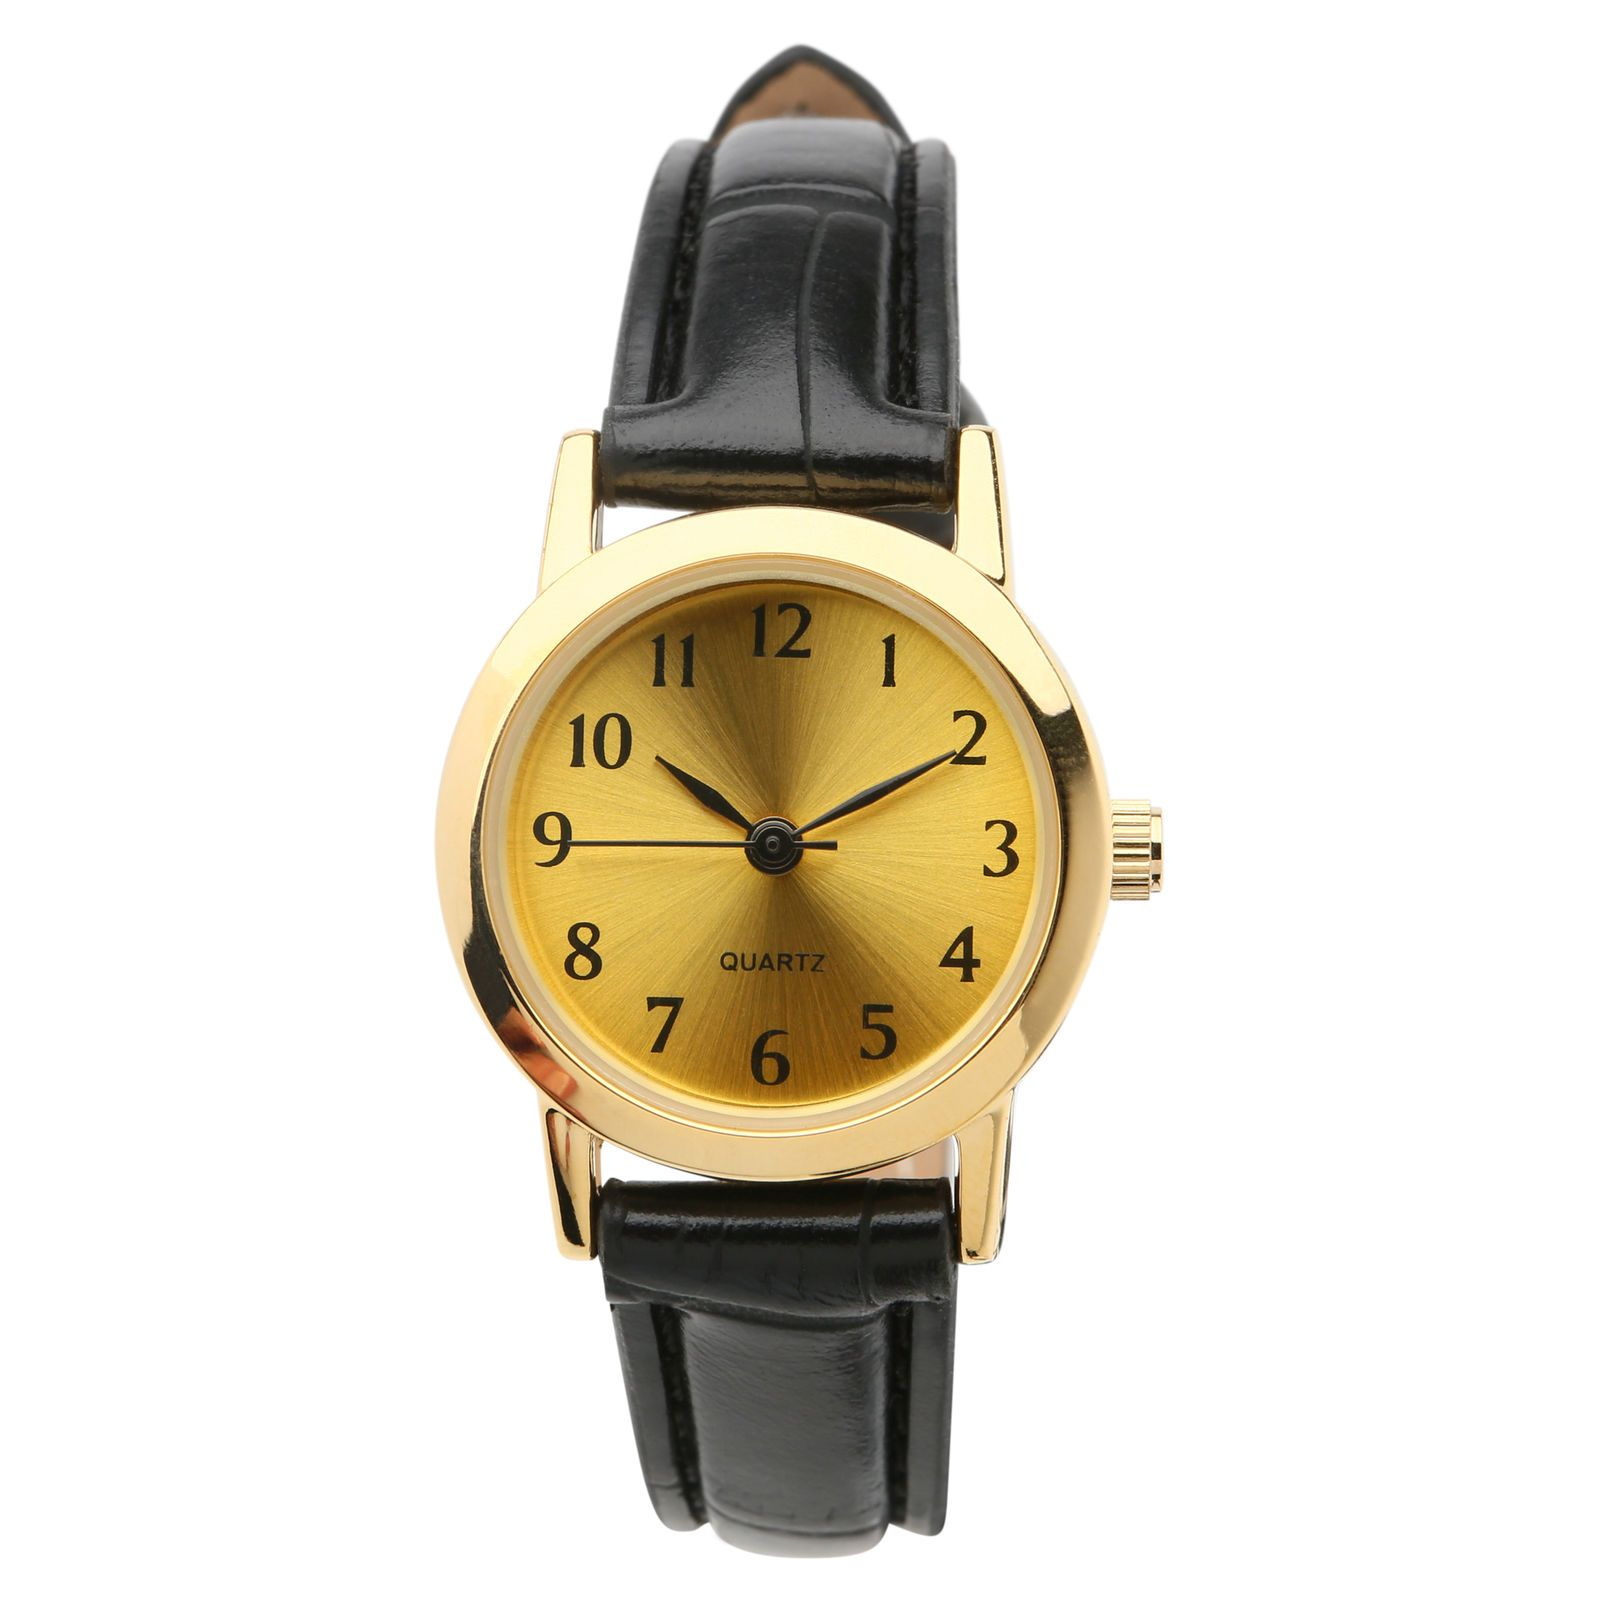 86840b46730 Generic Women s Leather Black Watch with Gold Dial